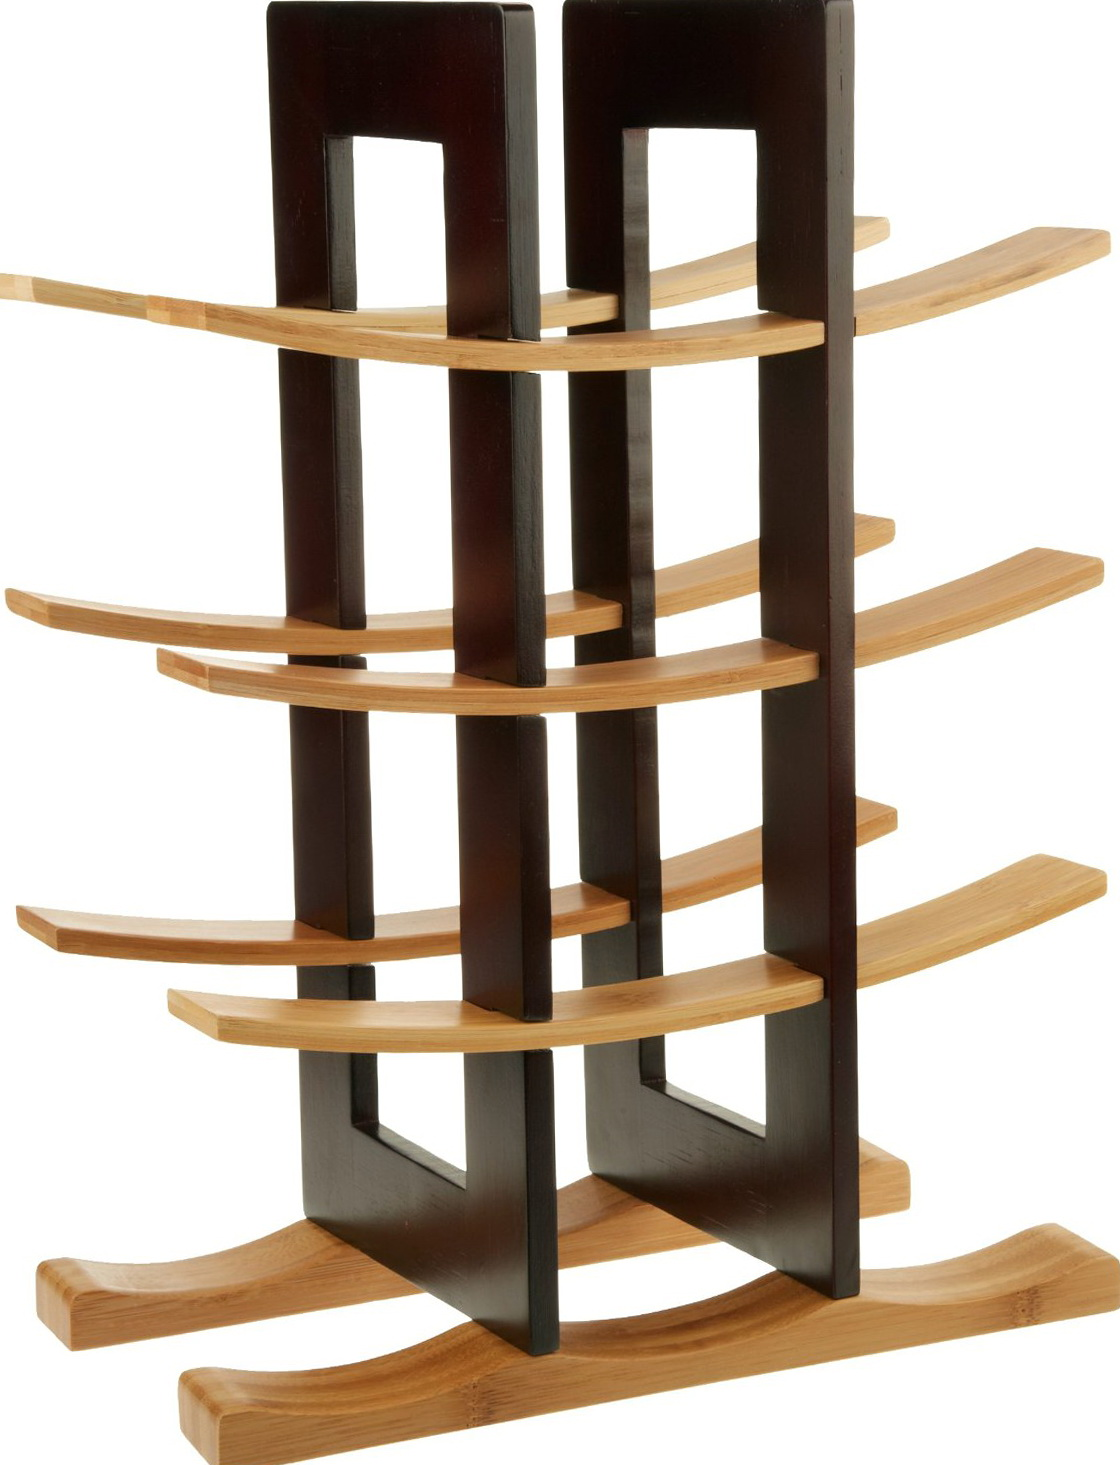 Small wine racks ikea home design ideas for Wine shelves ikea